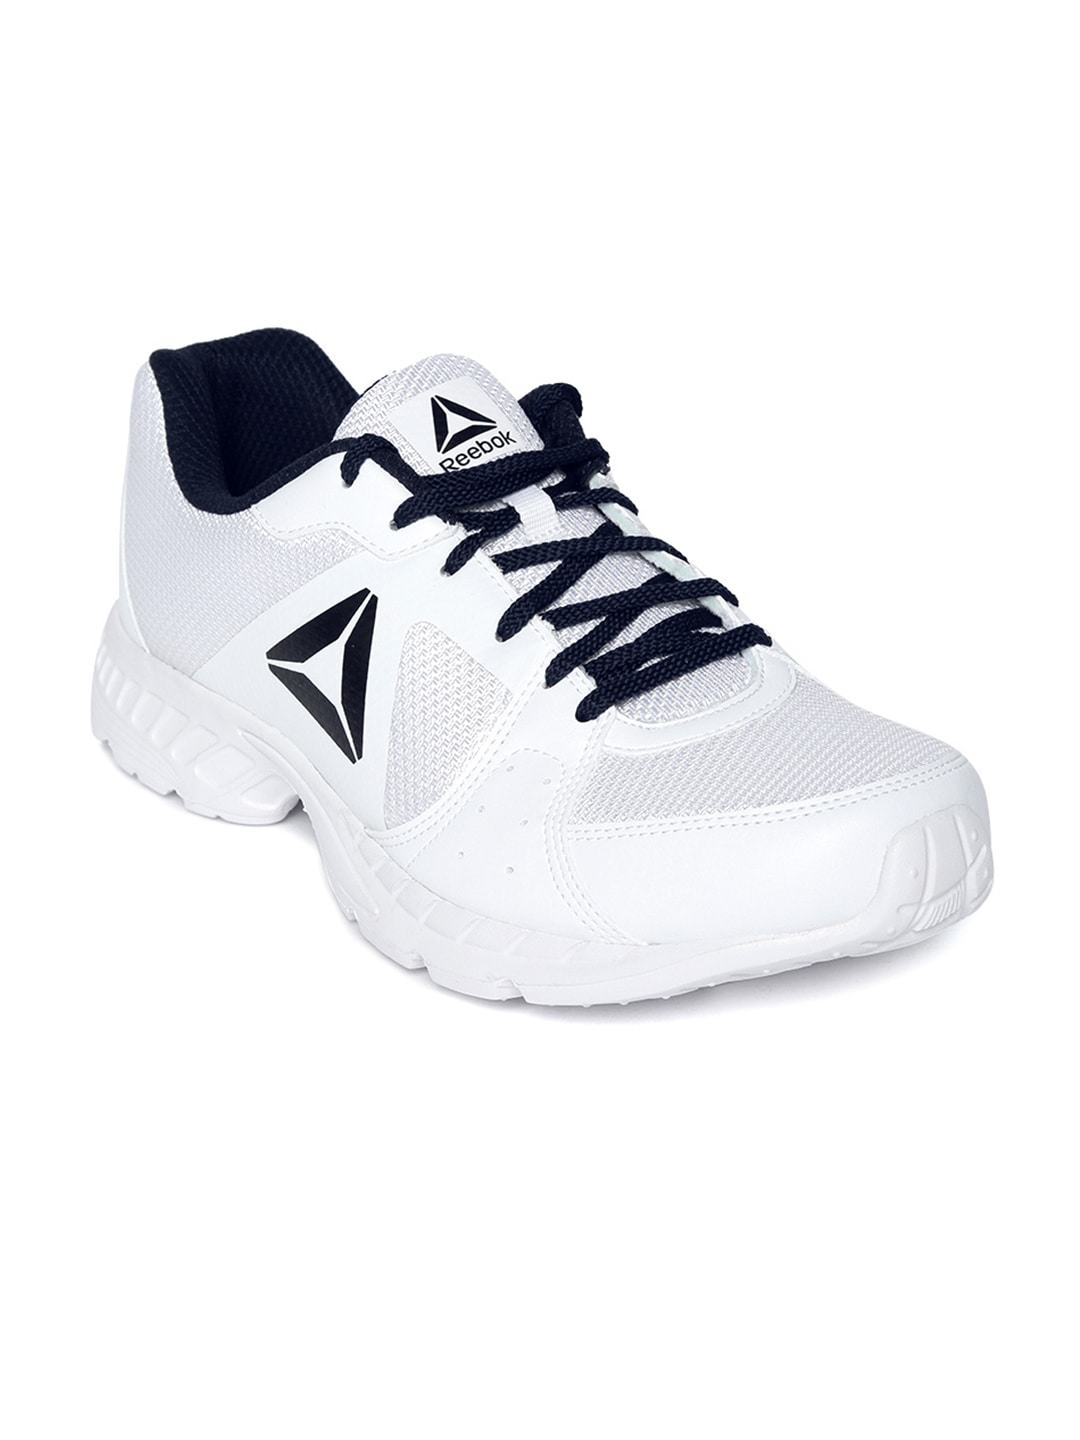 66565bfbad42 Reebok Speed Sports Shoes - Buy Reebok Speed Sports Shoes online in India